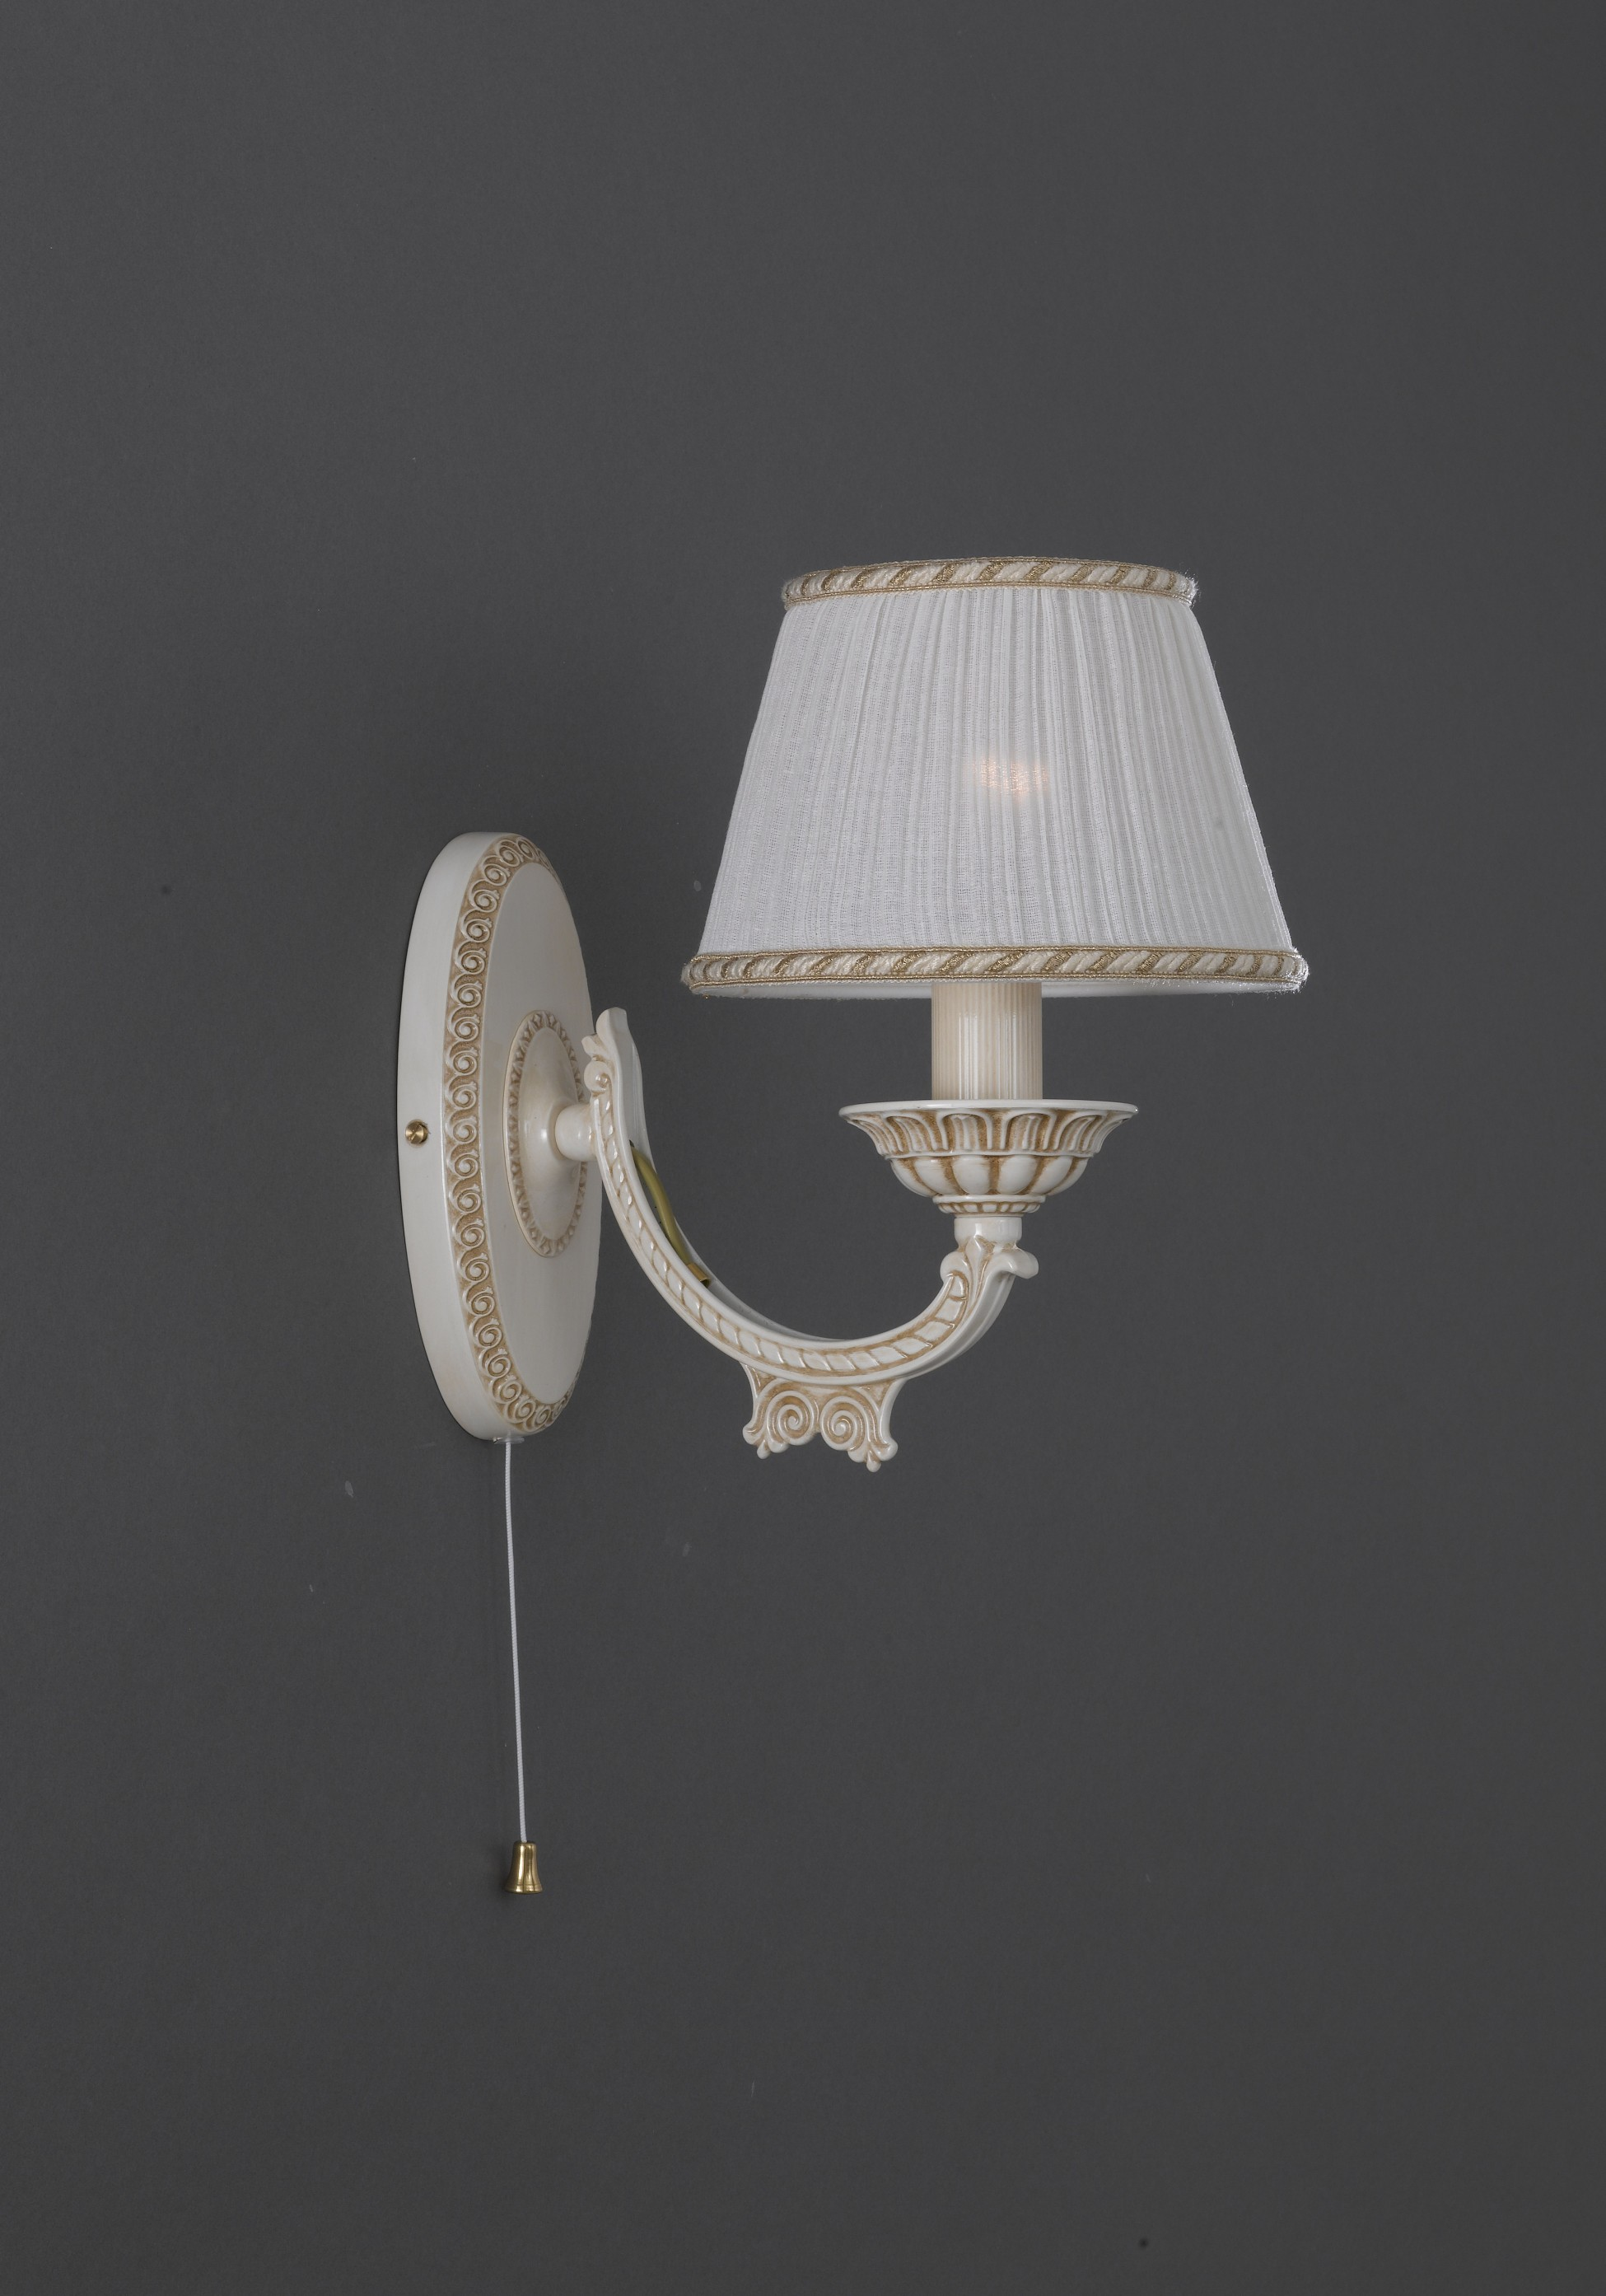 Brass Wall Lights With Shades : 1 light old white brass wall sconce with lamp shades Reccagni Store